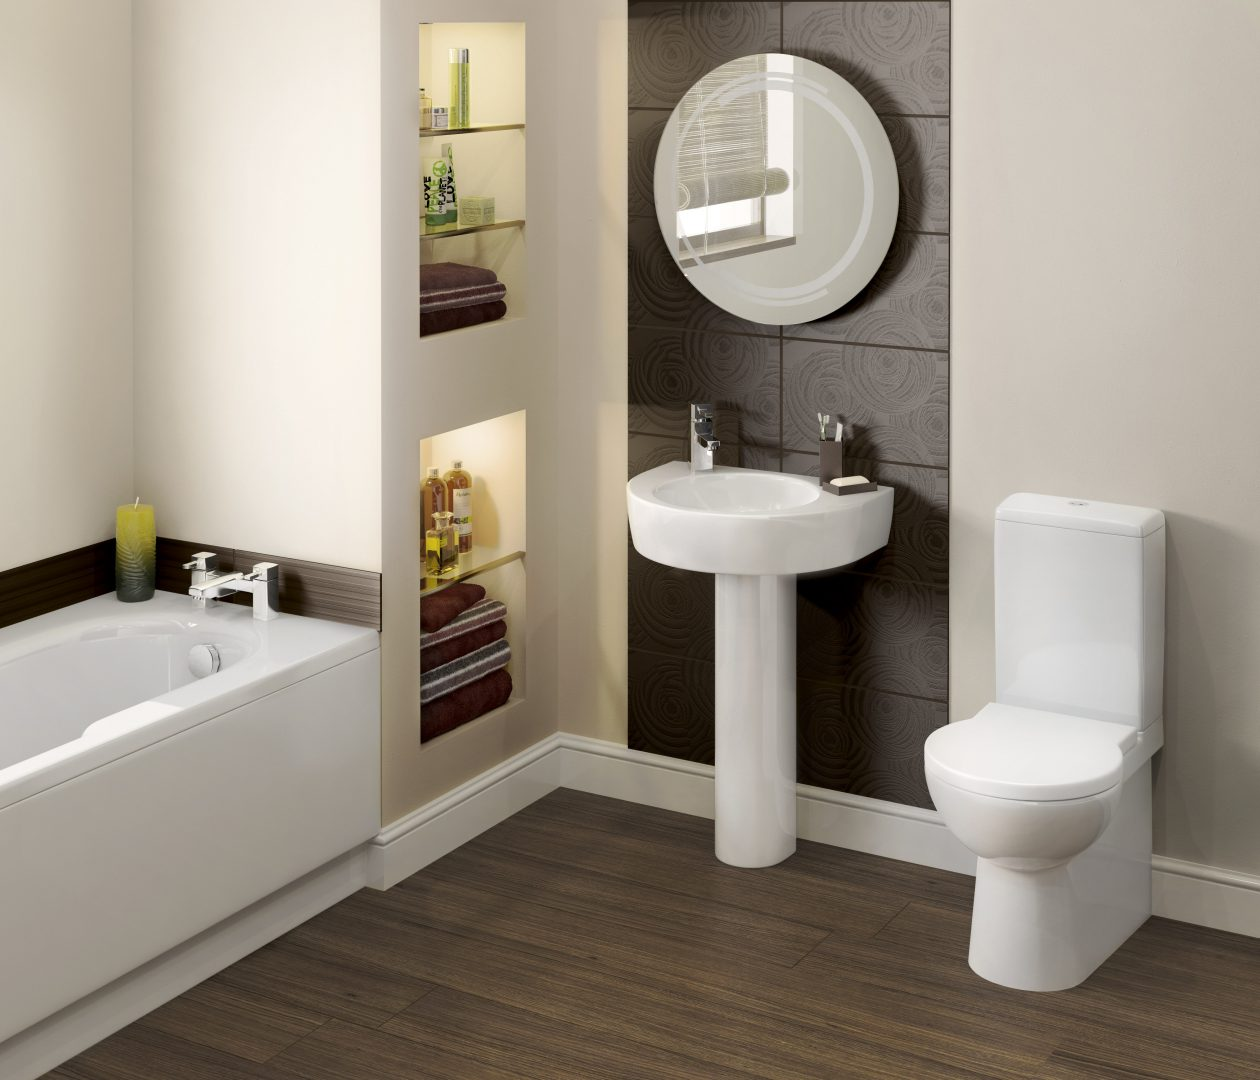 Feng Shui Baño Sobre Cocina:Small Bathroom Design Ideas